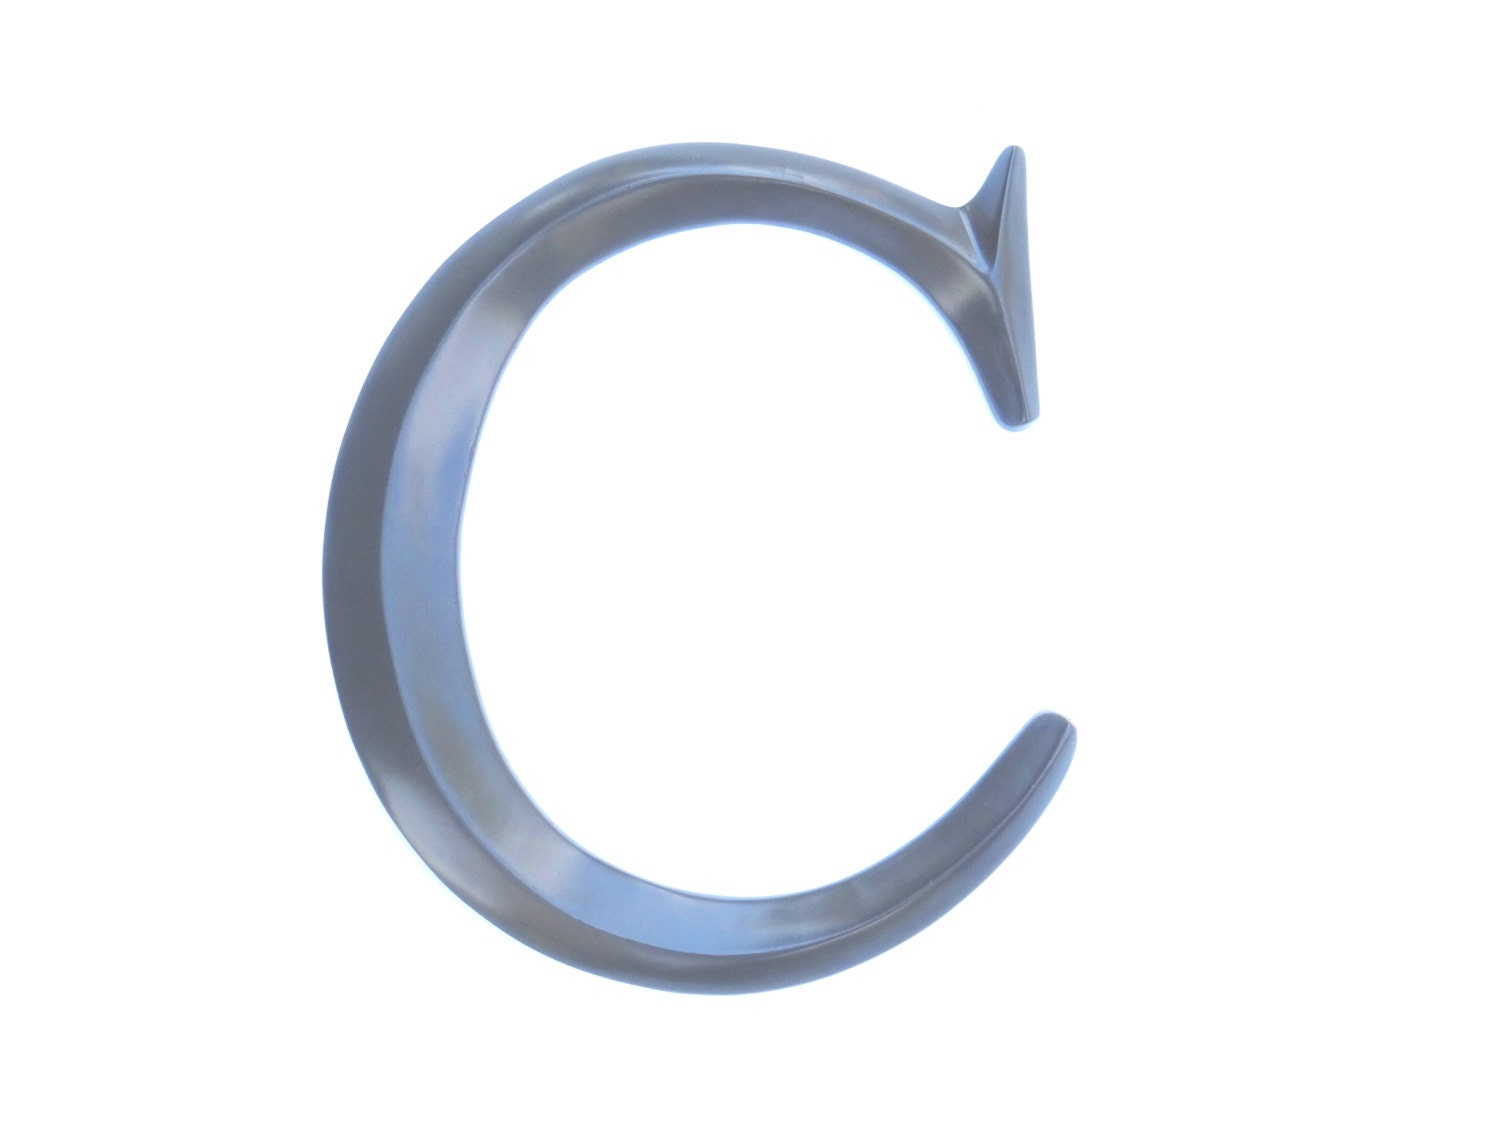 letter c wall decor letter c sign large letter c wall decor 22784 | il fullxfull.800645294 lza1